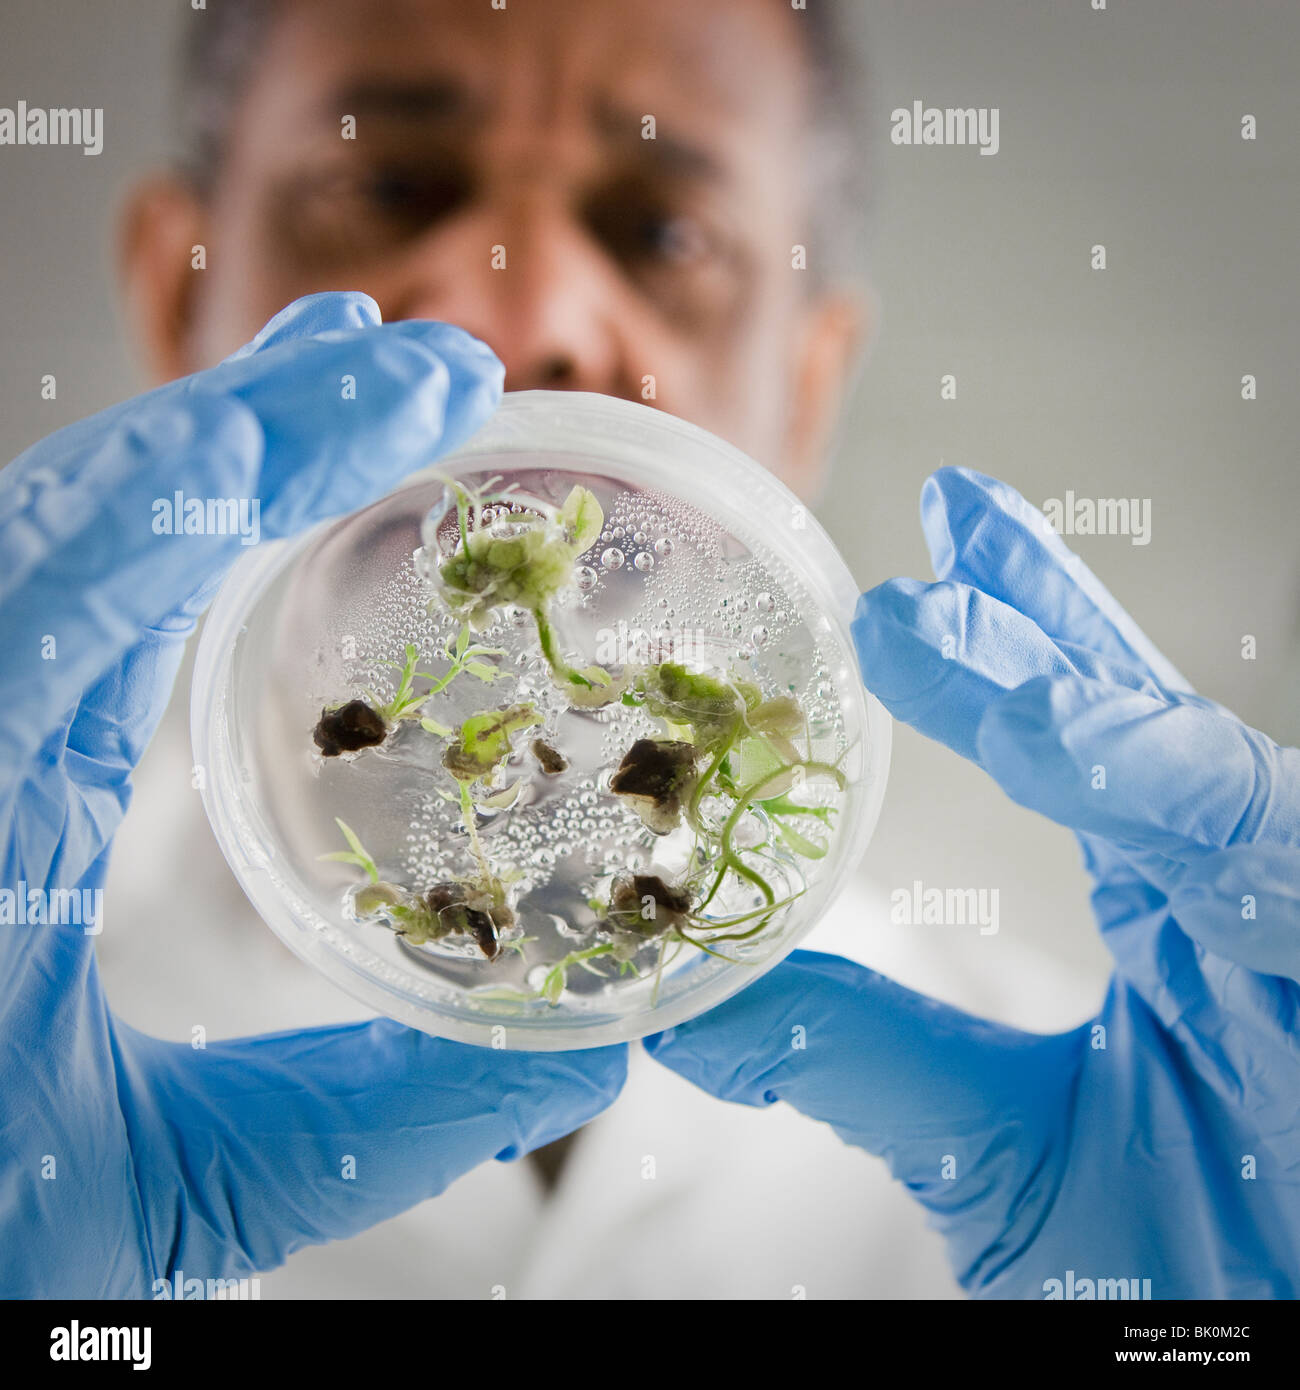 African American Scientist holding specimen in petri dish Banque D'Images